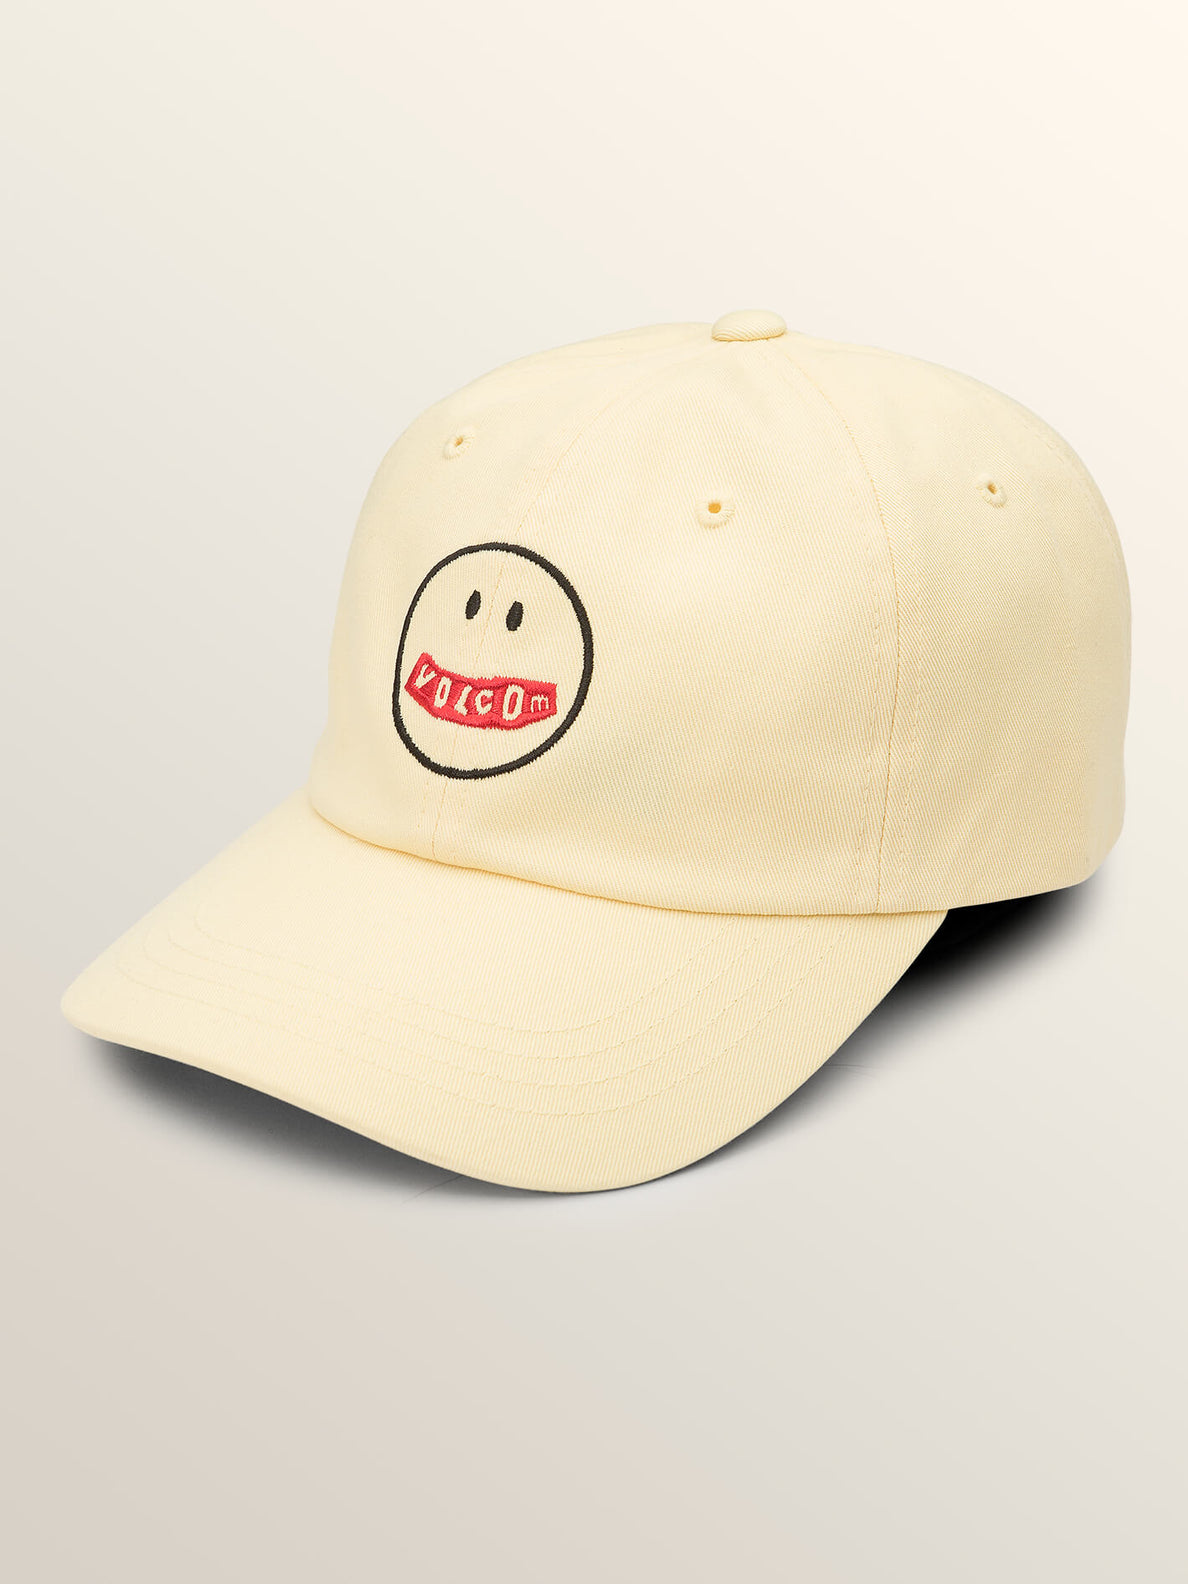 Totally Stoke Hat In Faded Yellow, Front View